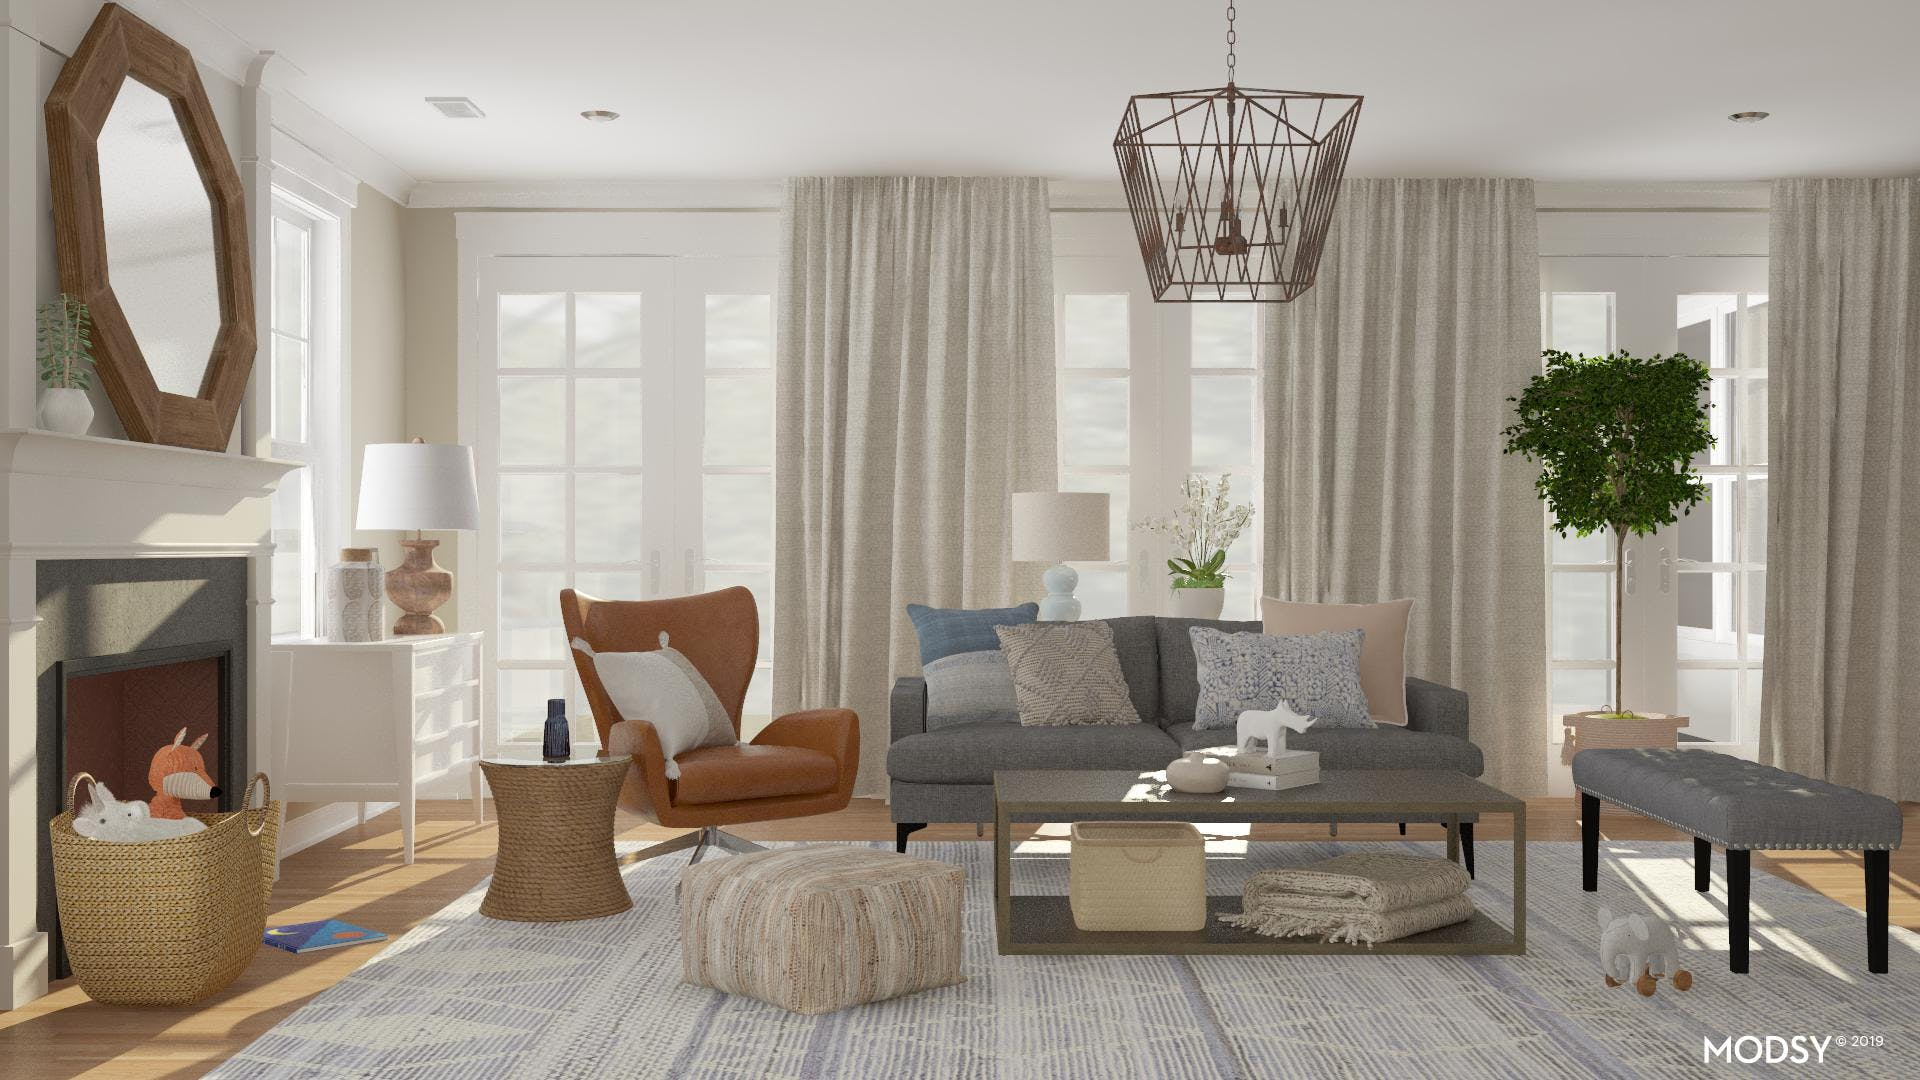 A Contemporary, Kid-Friendly Living Room